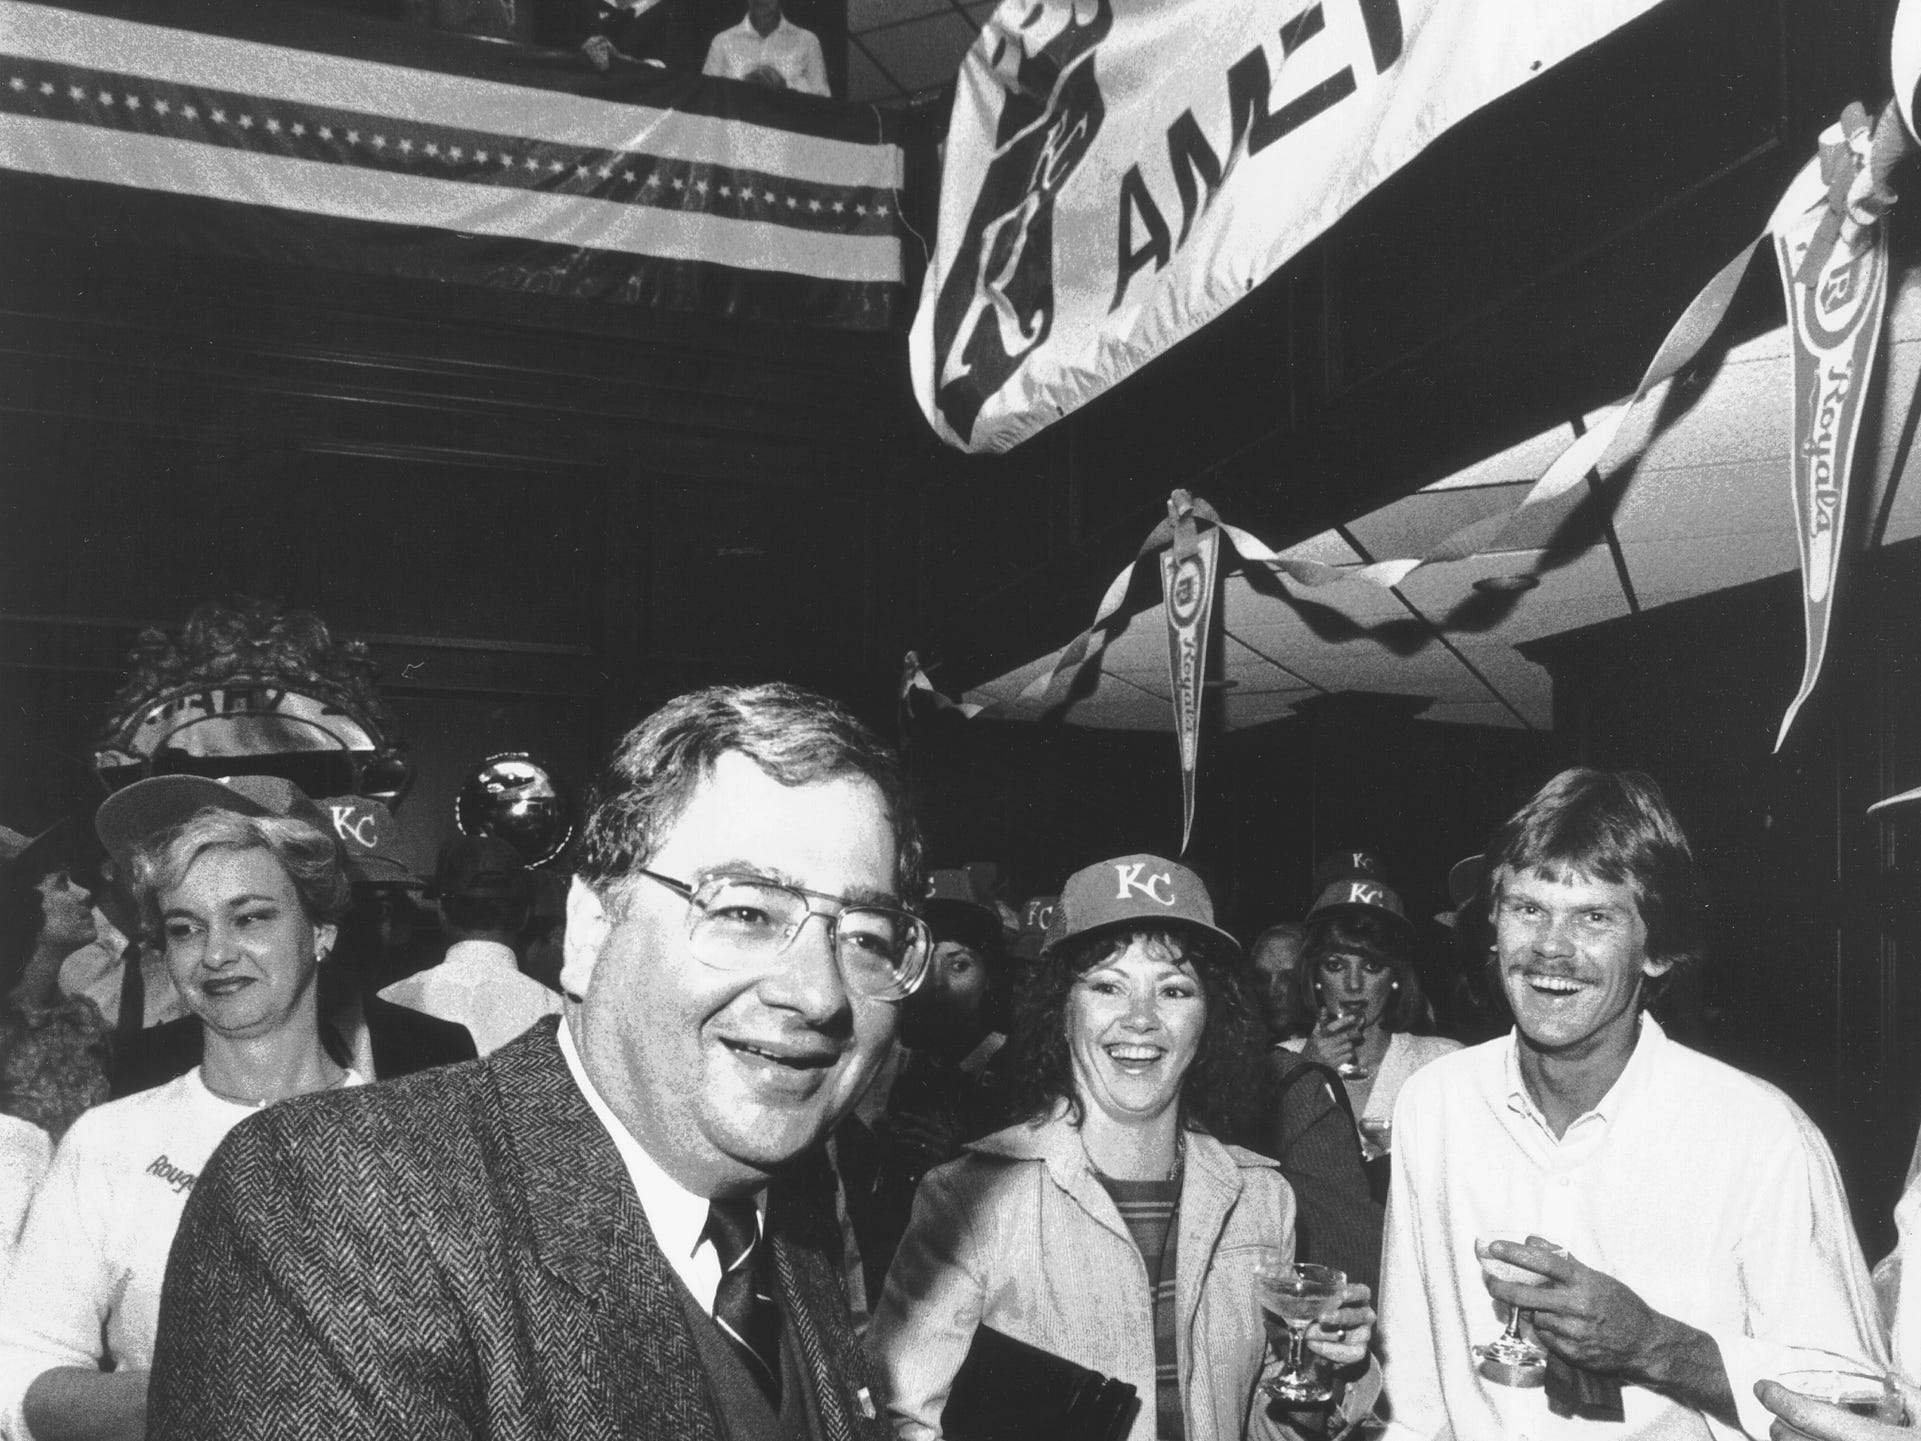 October 17, 1985 - Avron Fogelman is all smiles on October 17, 1985, as he celebrates with employees at his office. The Kansas City Royals, which are co-owned by Fogelman, meet the St. Louis Cardinals in the World Series beginning October 19 in Kansas City.